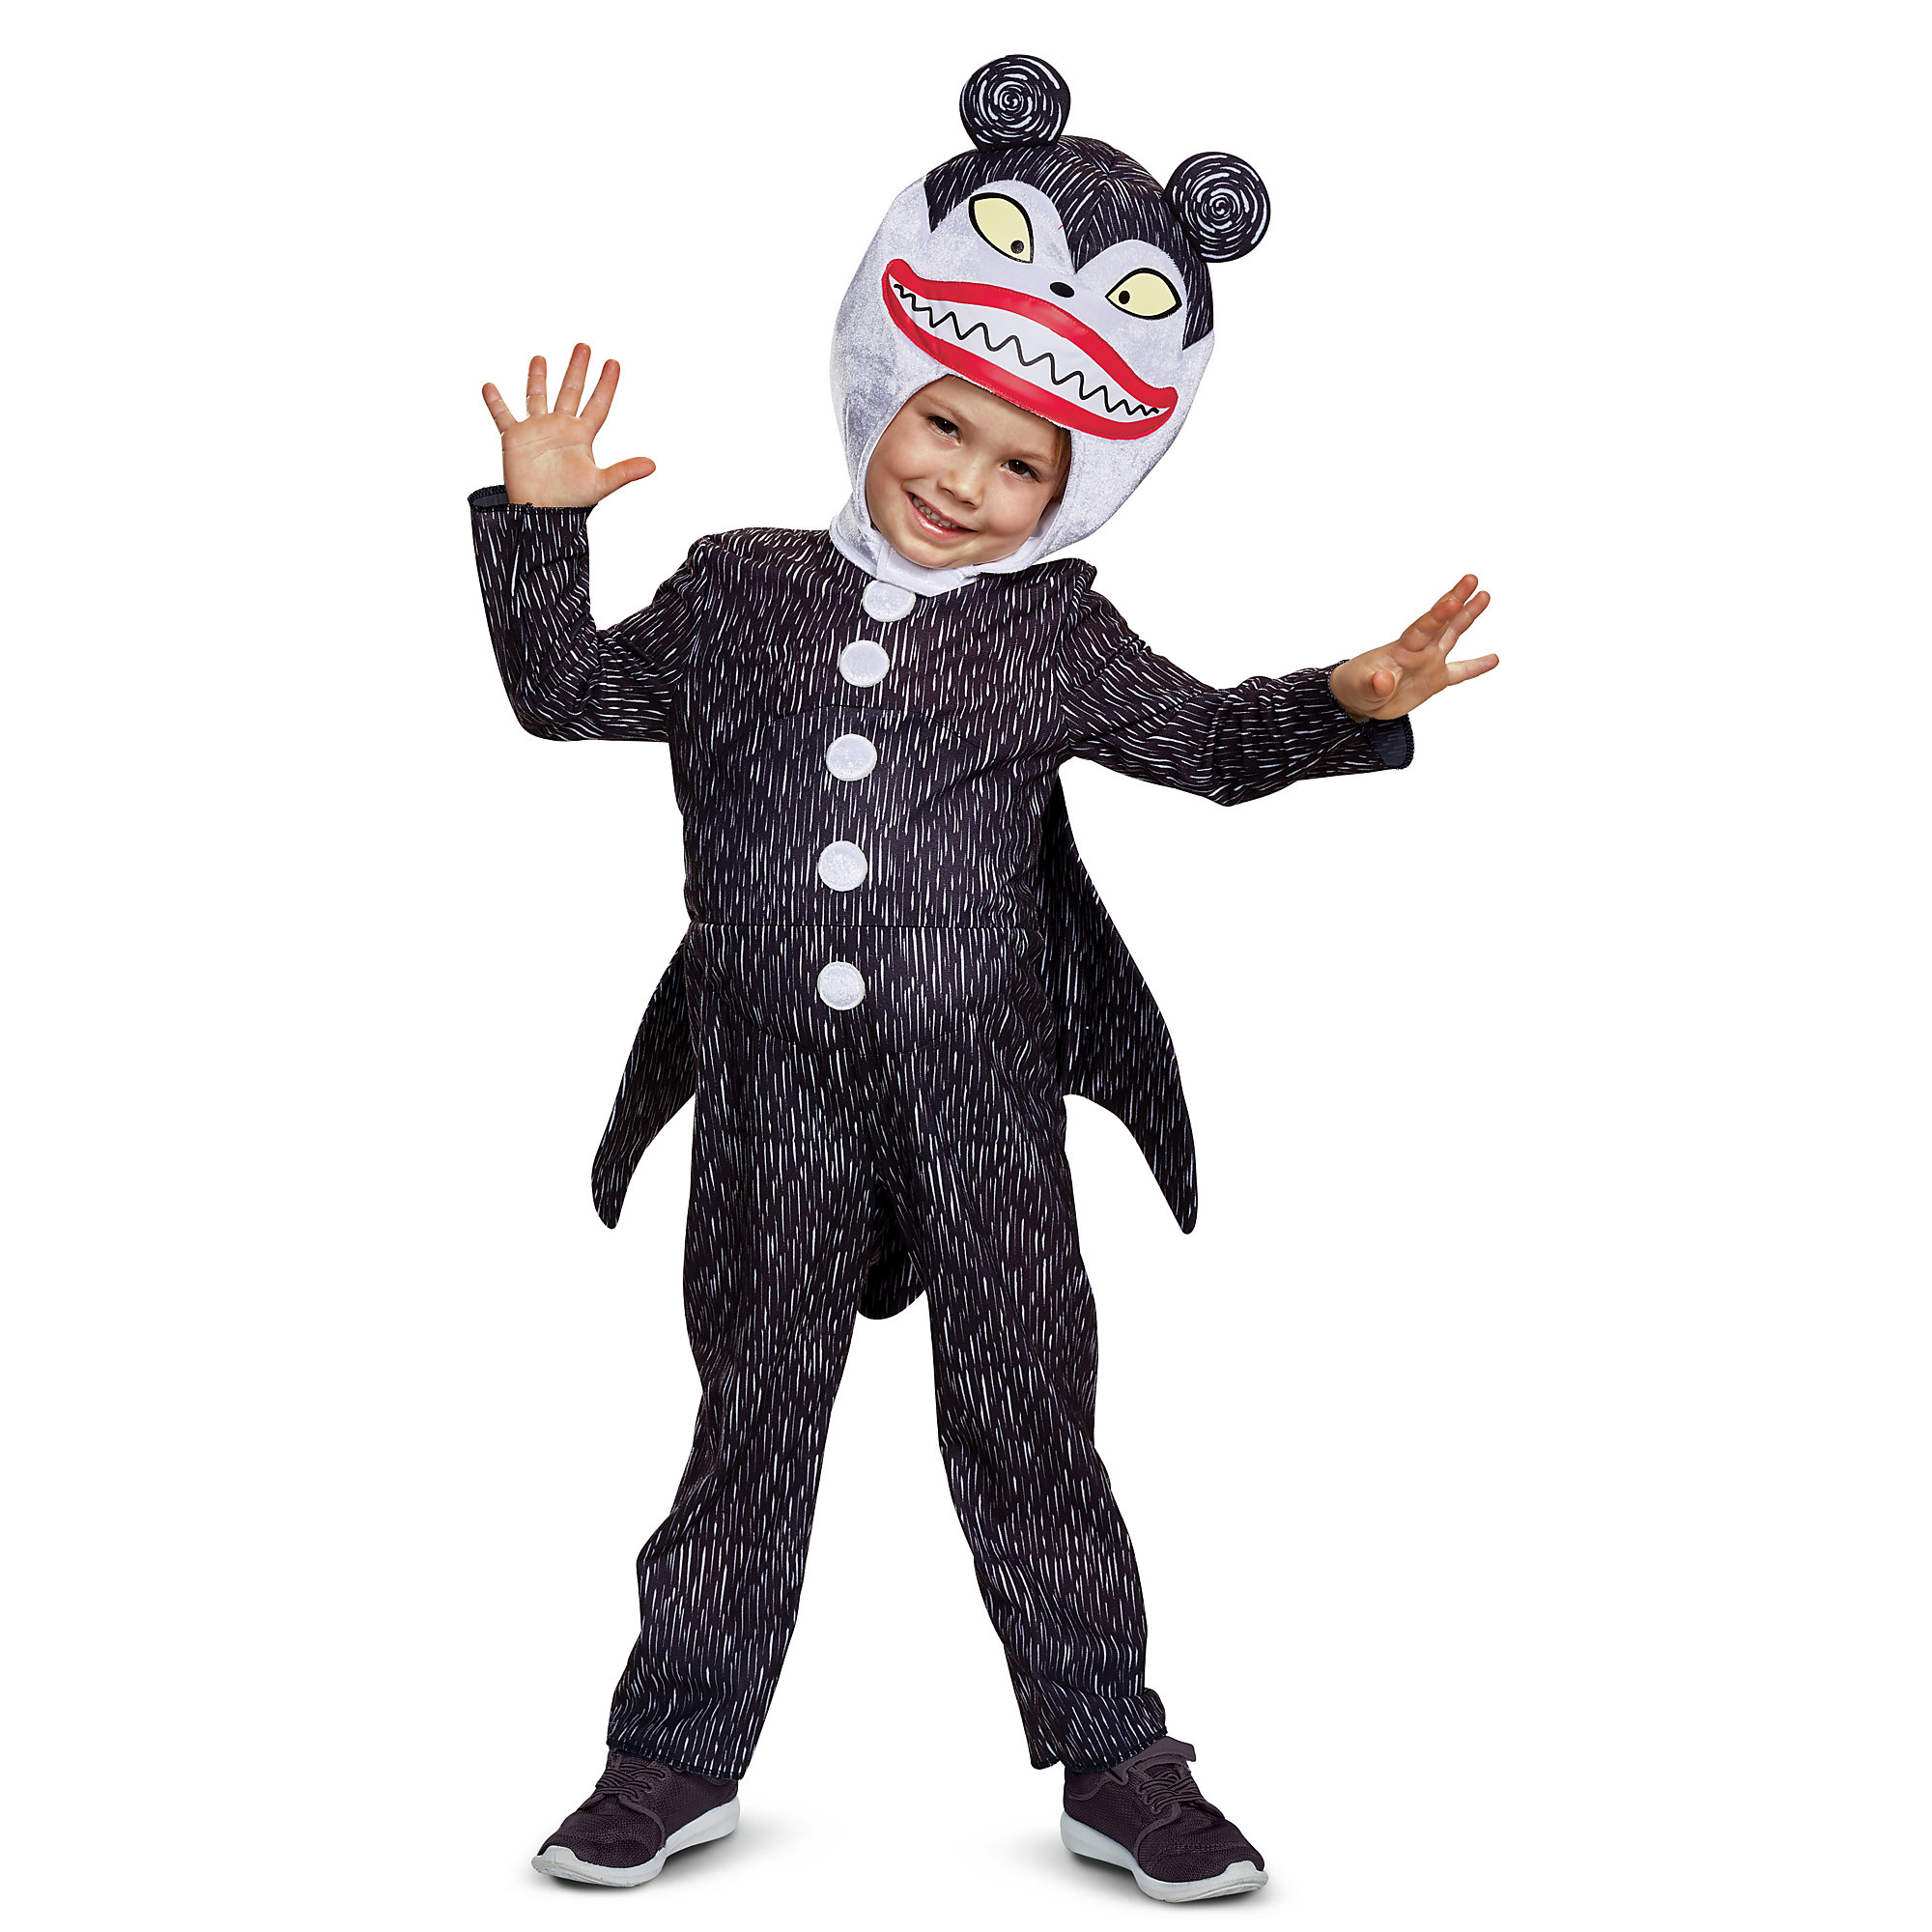 Scary Teddy Costume for Kids by Disguise - The Nightmare Before Christmas  sc 1 st  shopDisney & Scary Teddy Costume for Kids by Disguise - The Nightmare Before ...